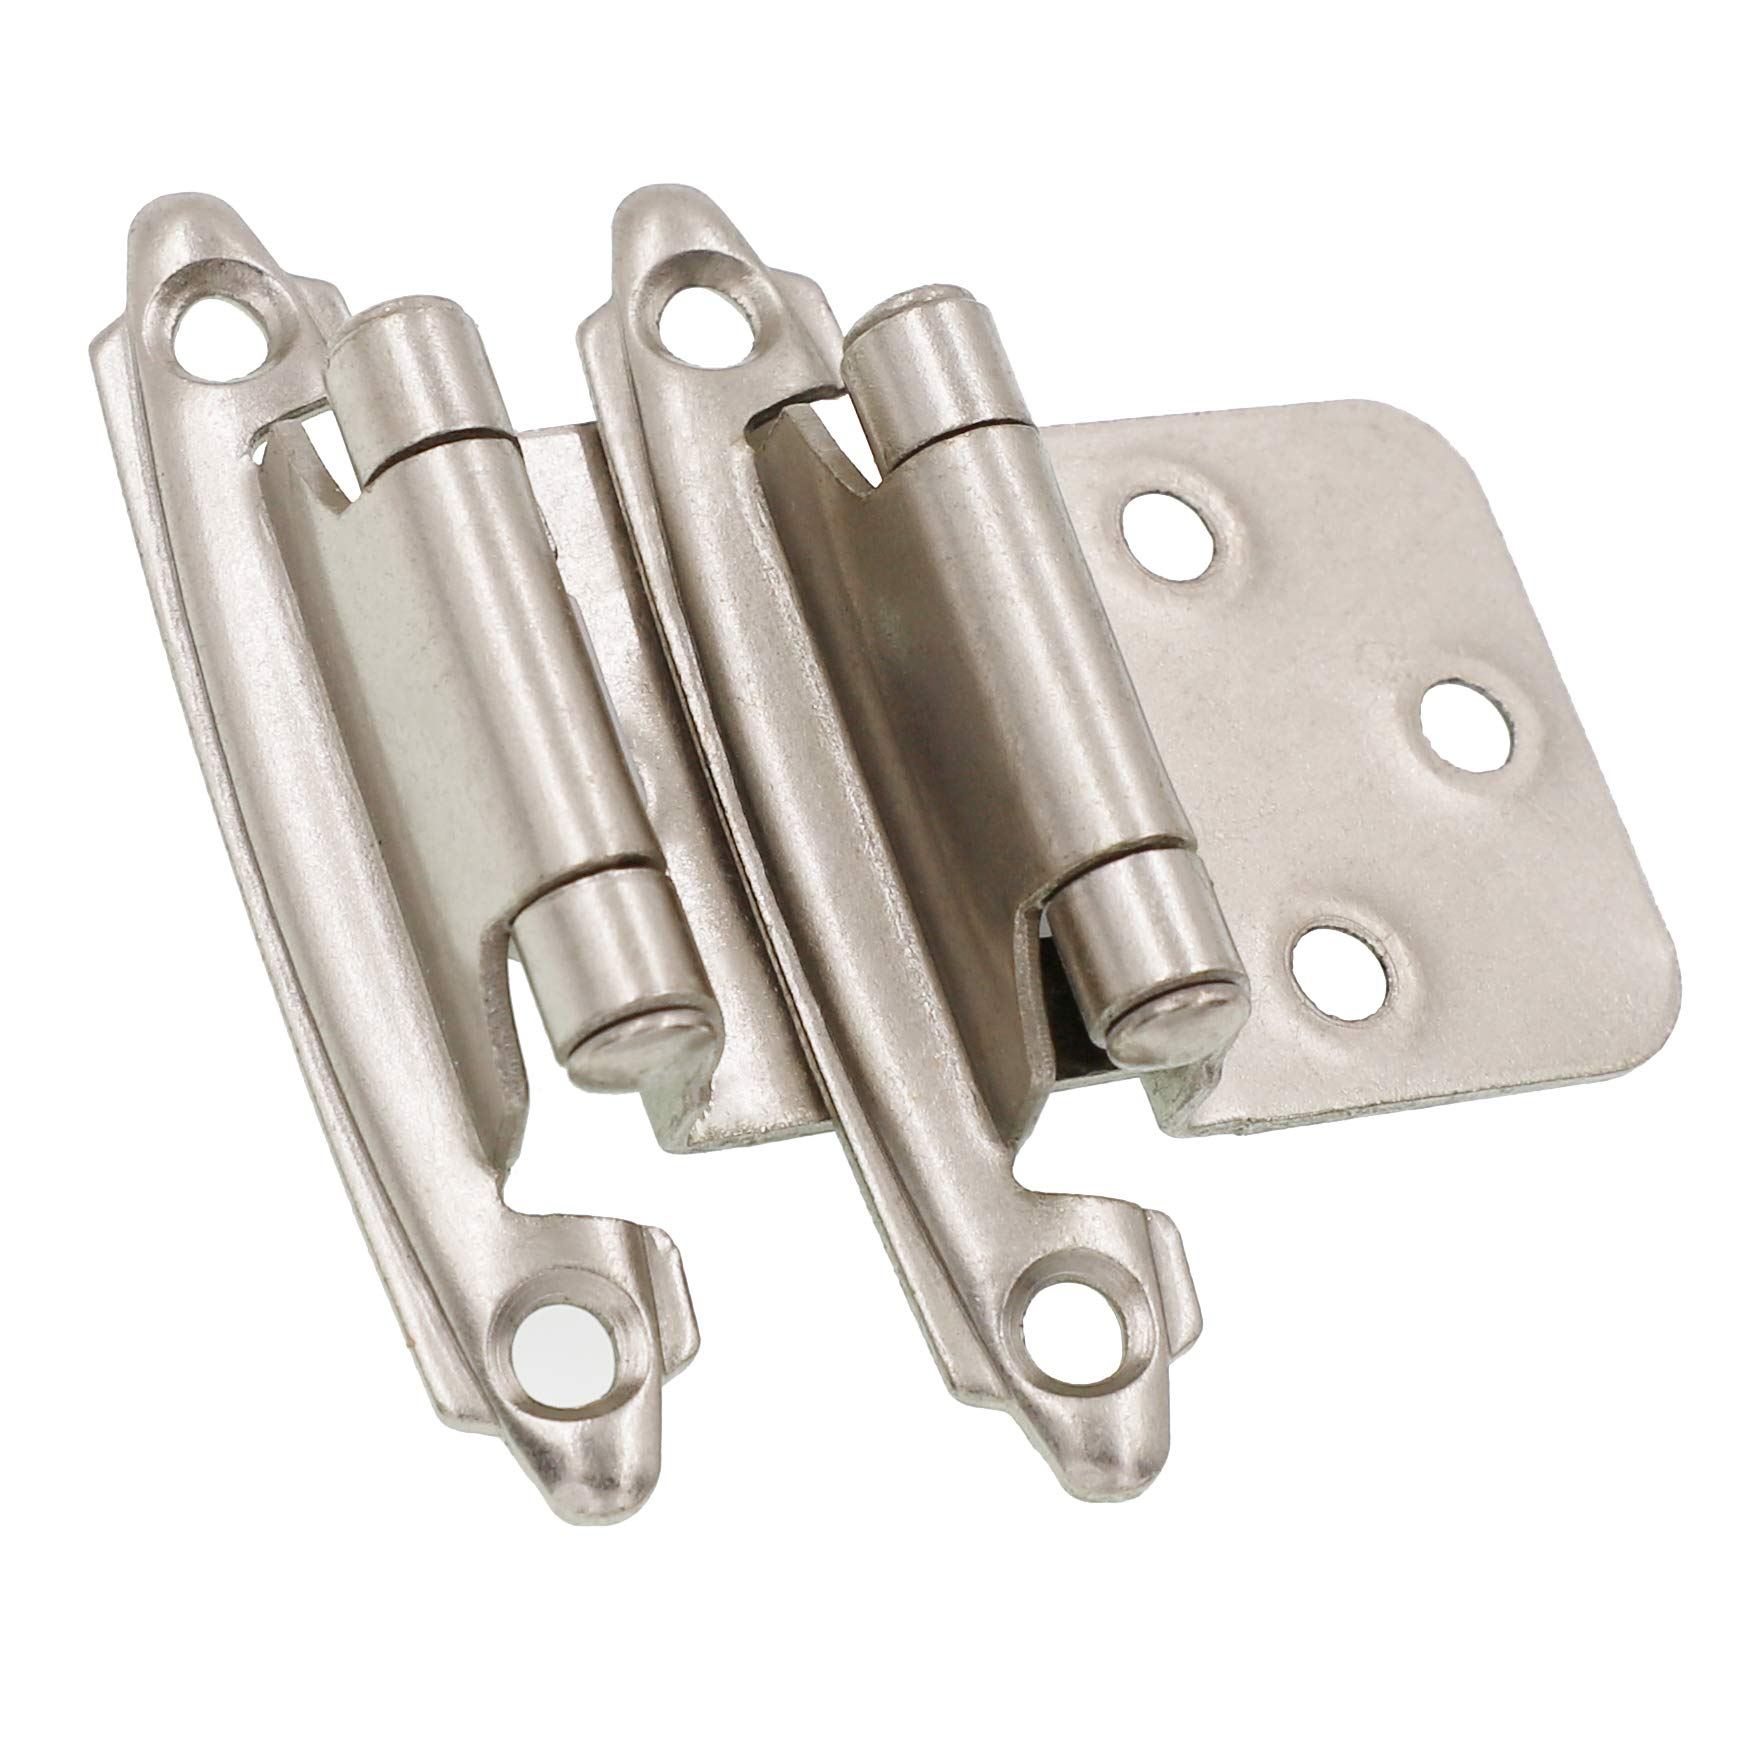 Lot of 25 Pairs (50pcs) Self Closing OVERLAY Flush Cabinet Hinges - Satin Nickel